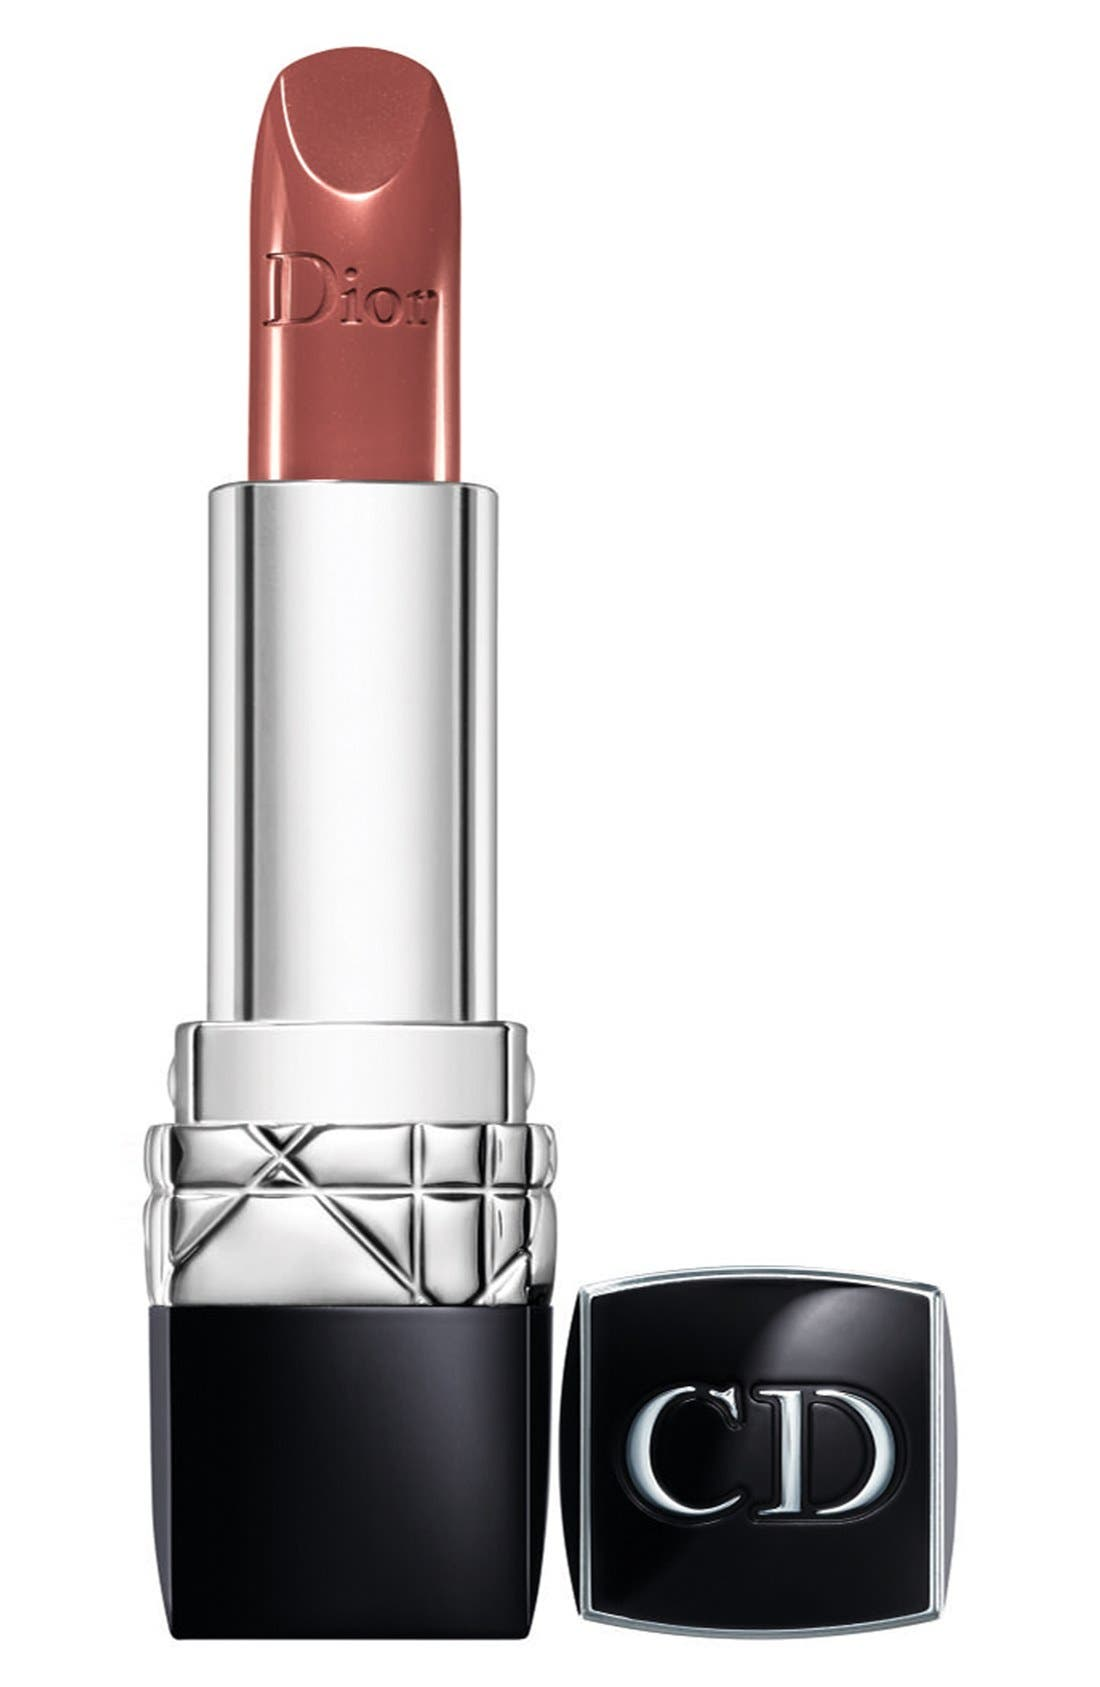 DIOR, 'Rouge Dior' Lipstick, Main thumbnail 1, color, 200